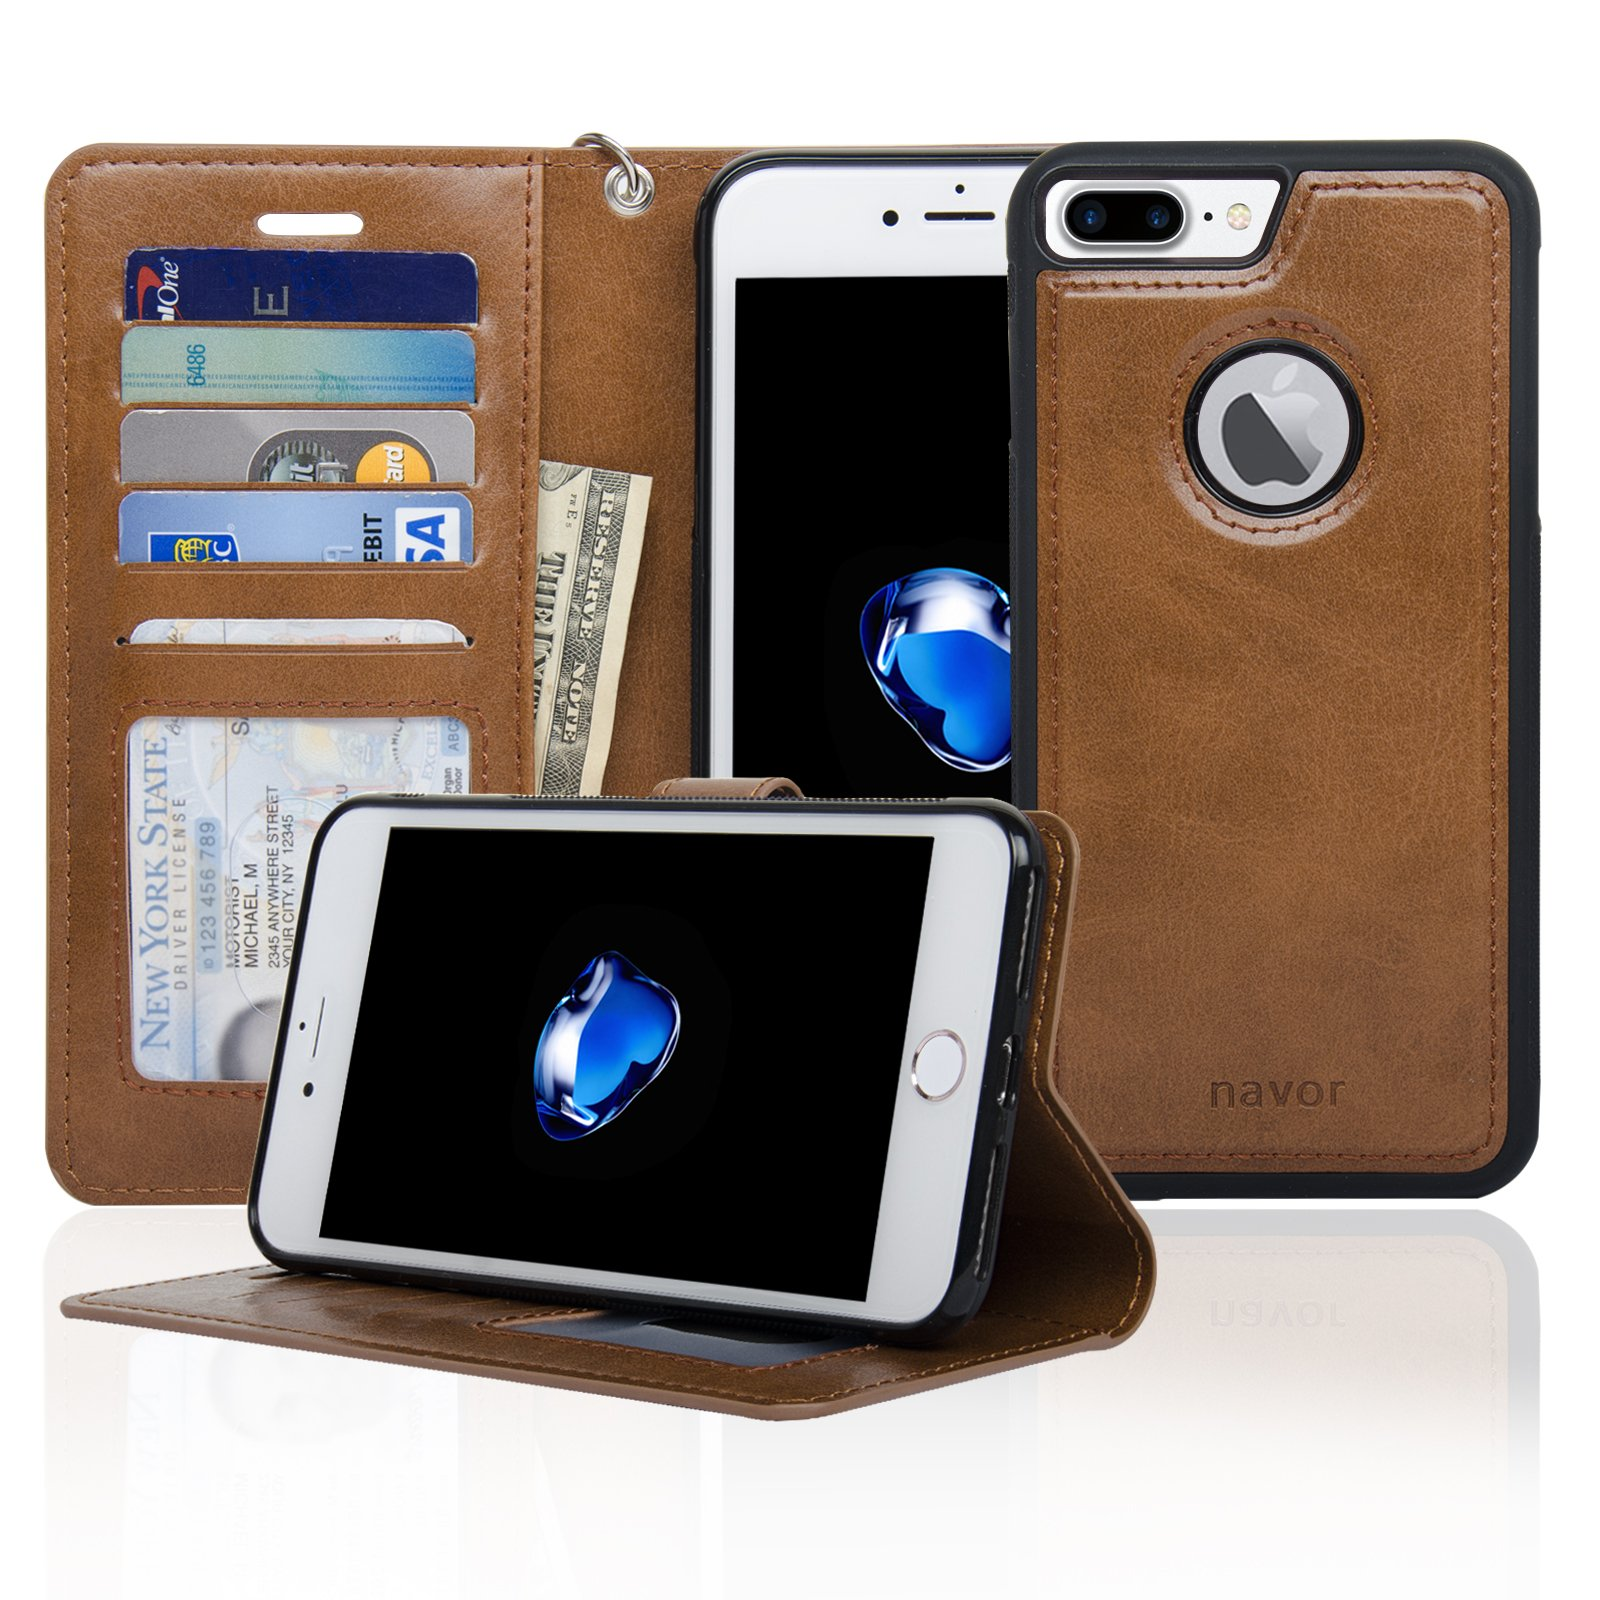 Navor Auto Align Detachable Magnetic Wallet Case Compatible for iPhone 7 Plus [RFID Theft Protection] JOOT-1L Series -Brown (IP7P1LBR)